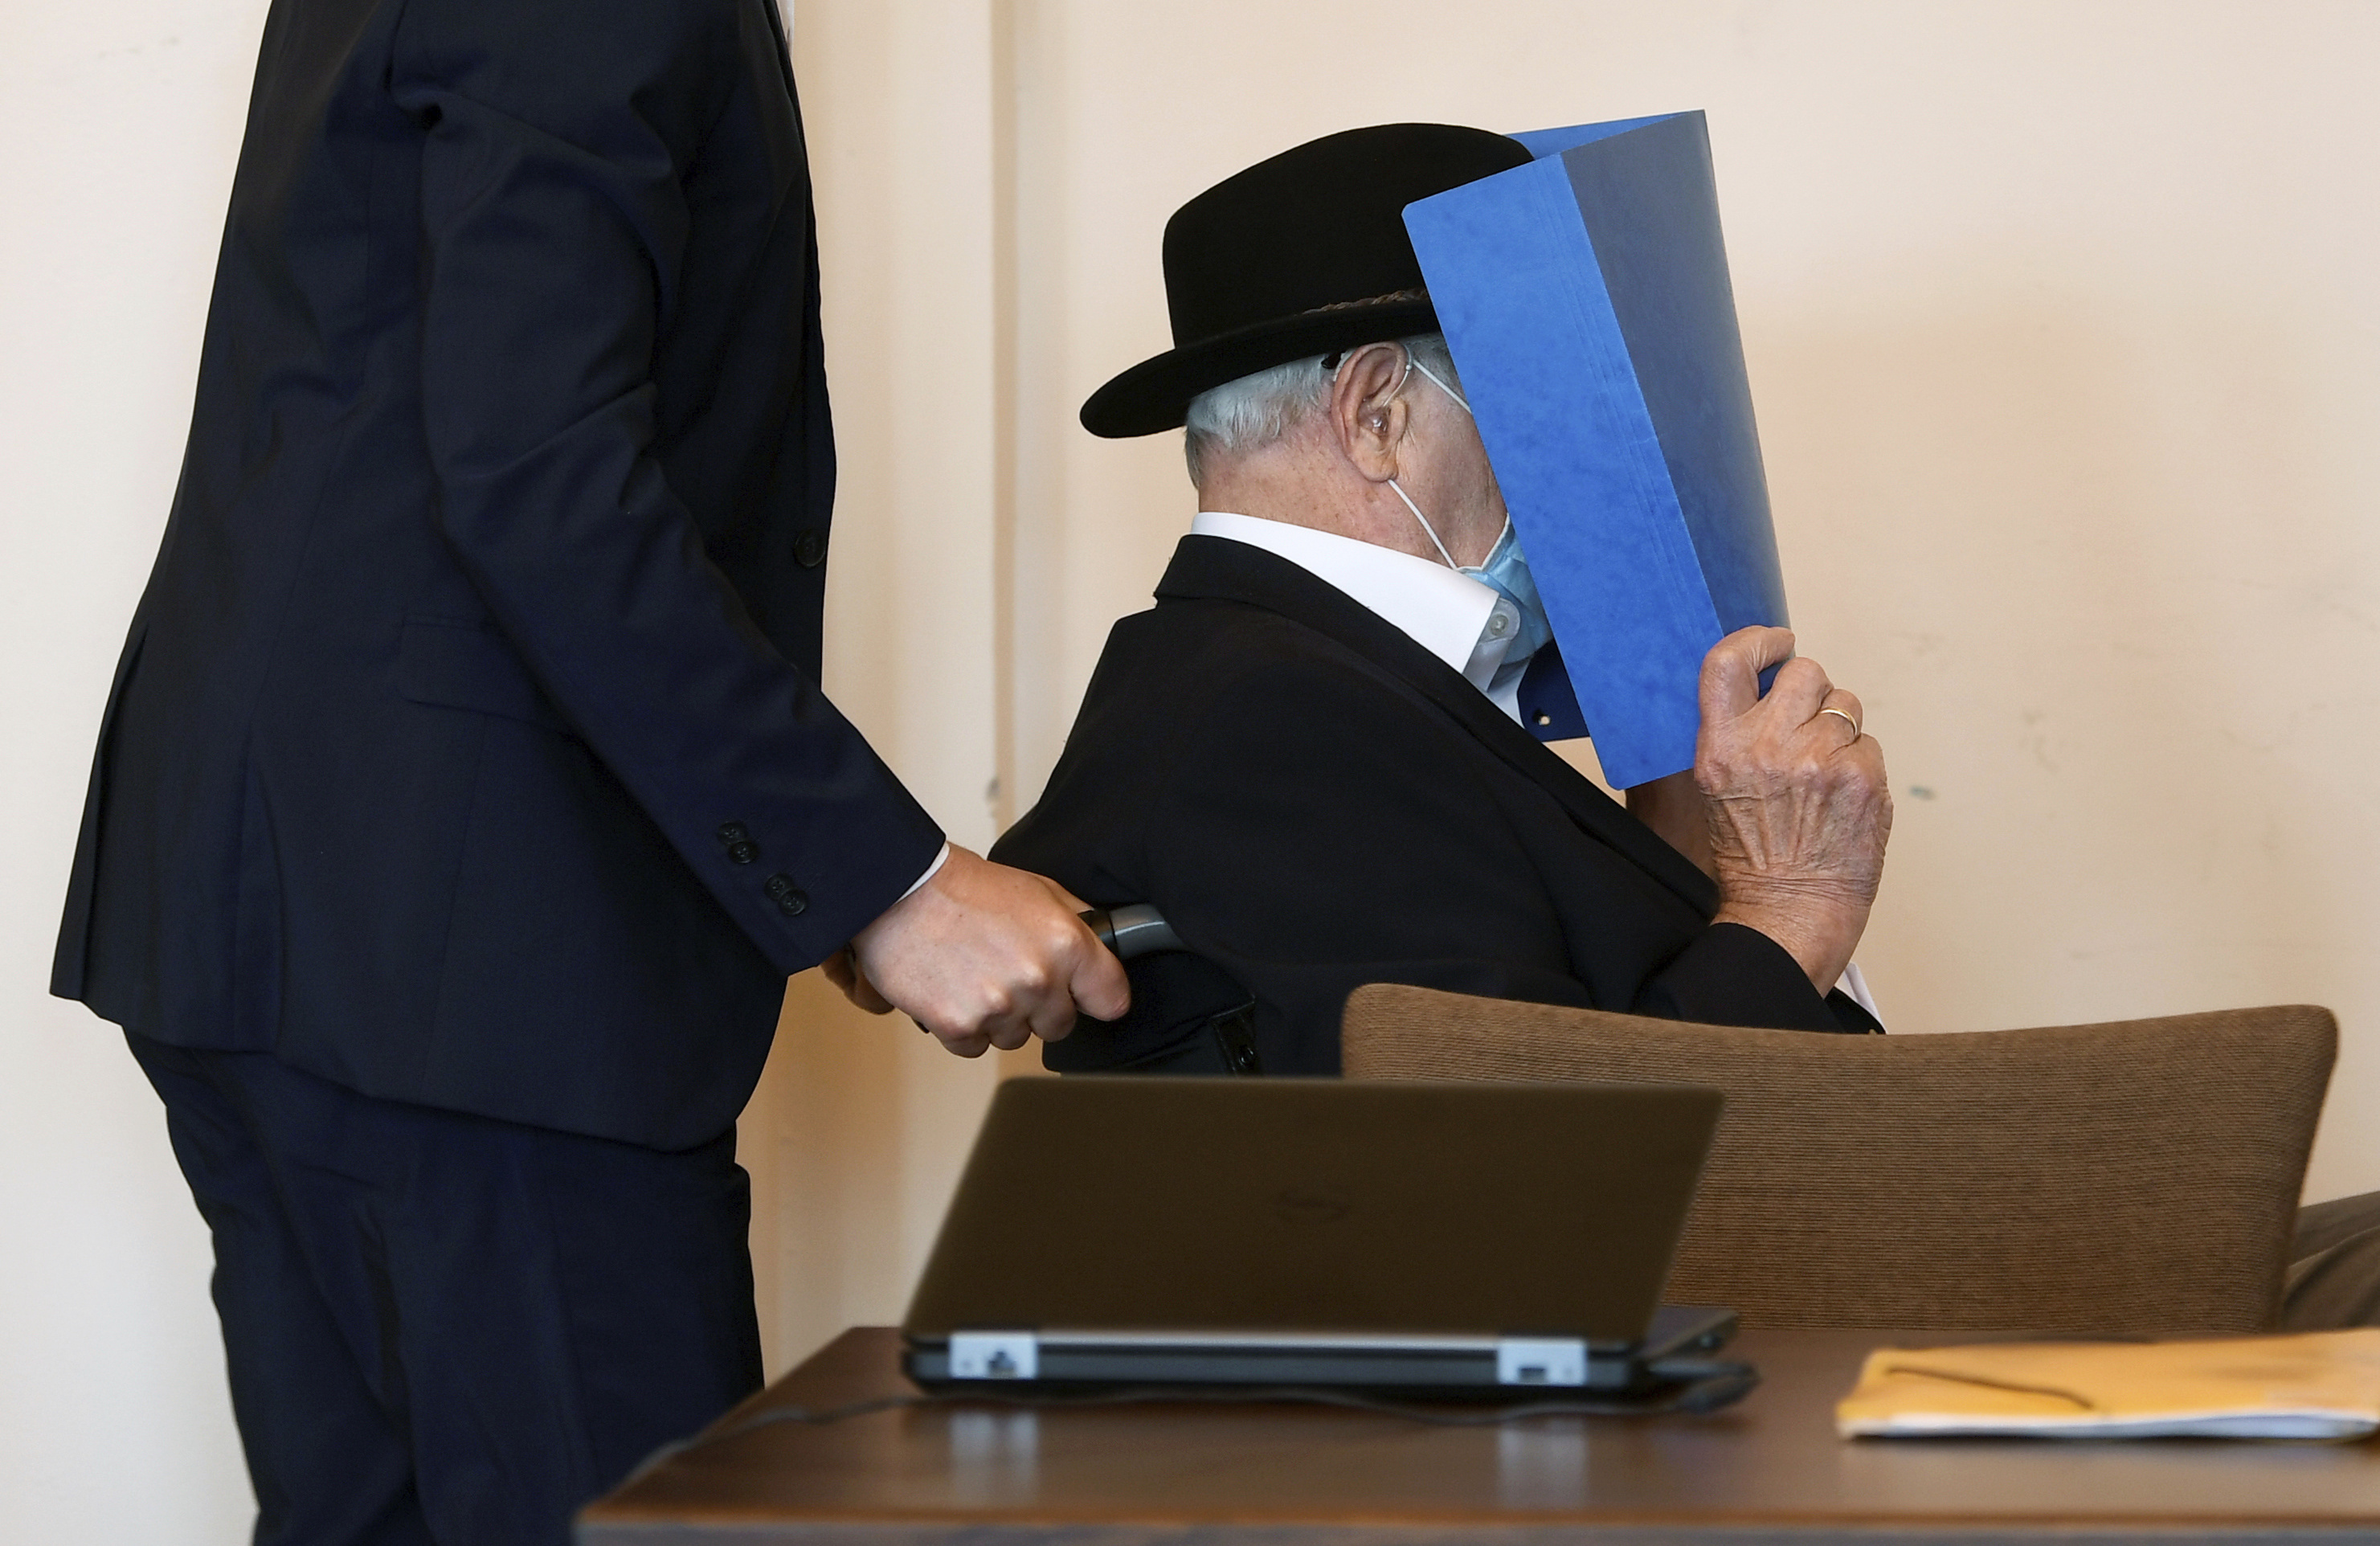 The 93-year-old German Bruno Dey, accused of being an SS guard involved in killing thousands of prisoners, arrives at a Hamburg court room on July 23, 2020.